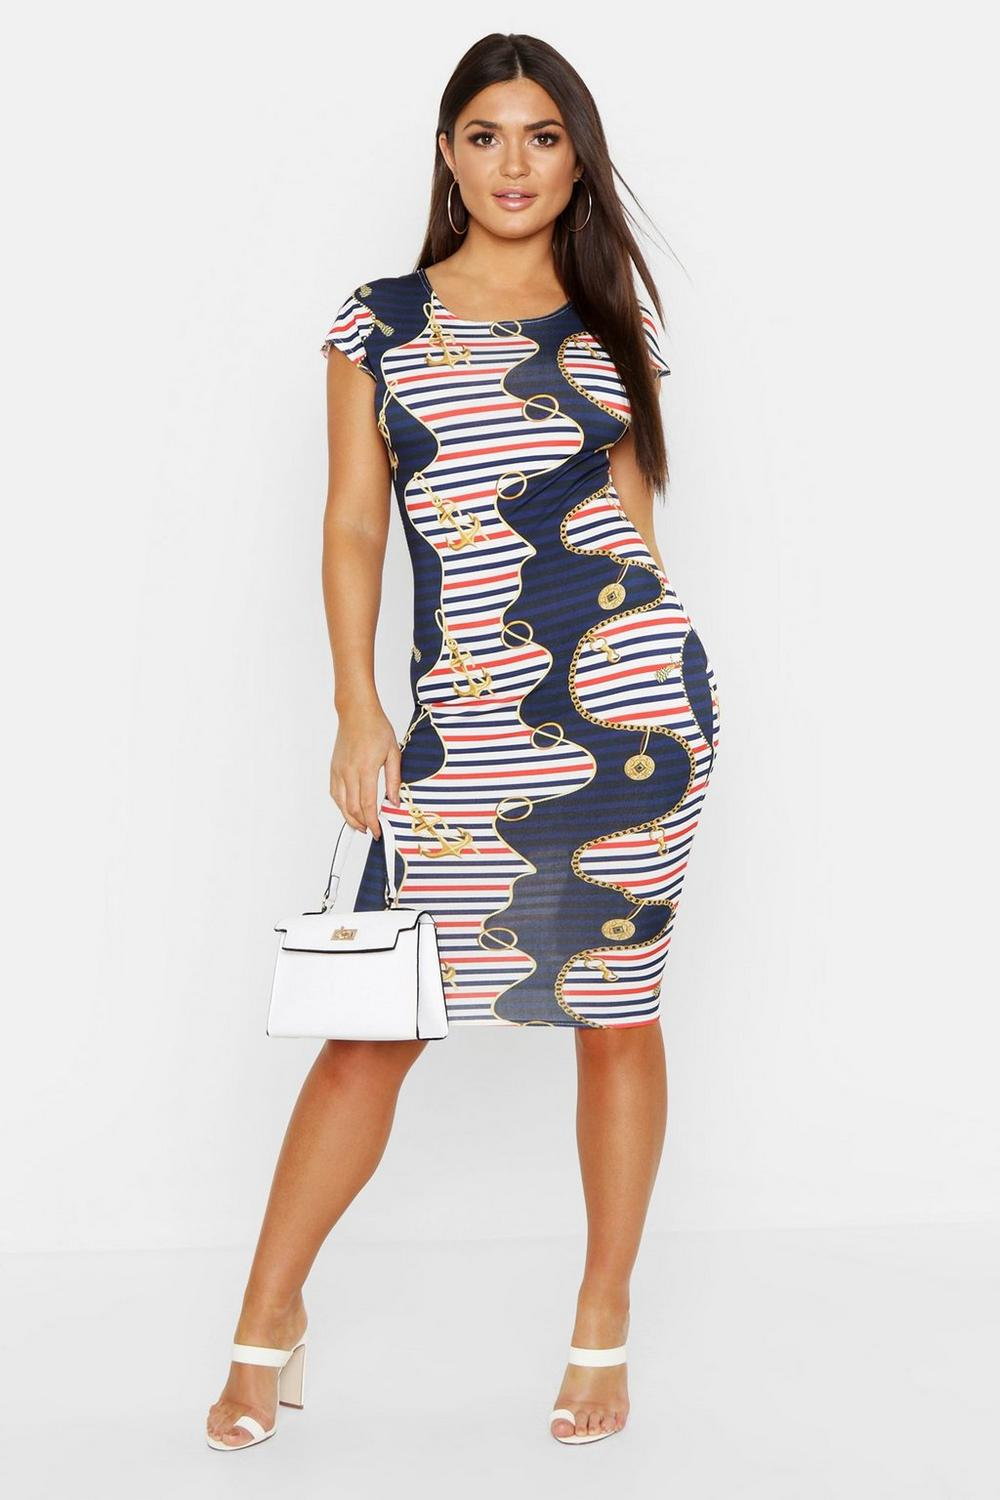 cccc0b4aa4 Womens Multi Nautical Chain Print Bodycon Cap Sleeve Midi Dress. Hover to  zoom